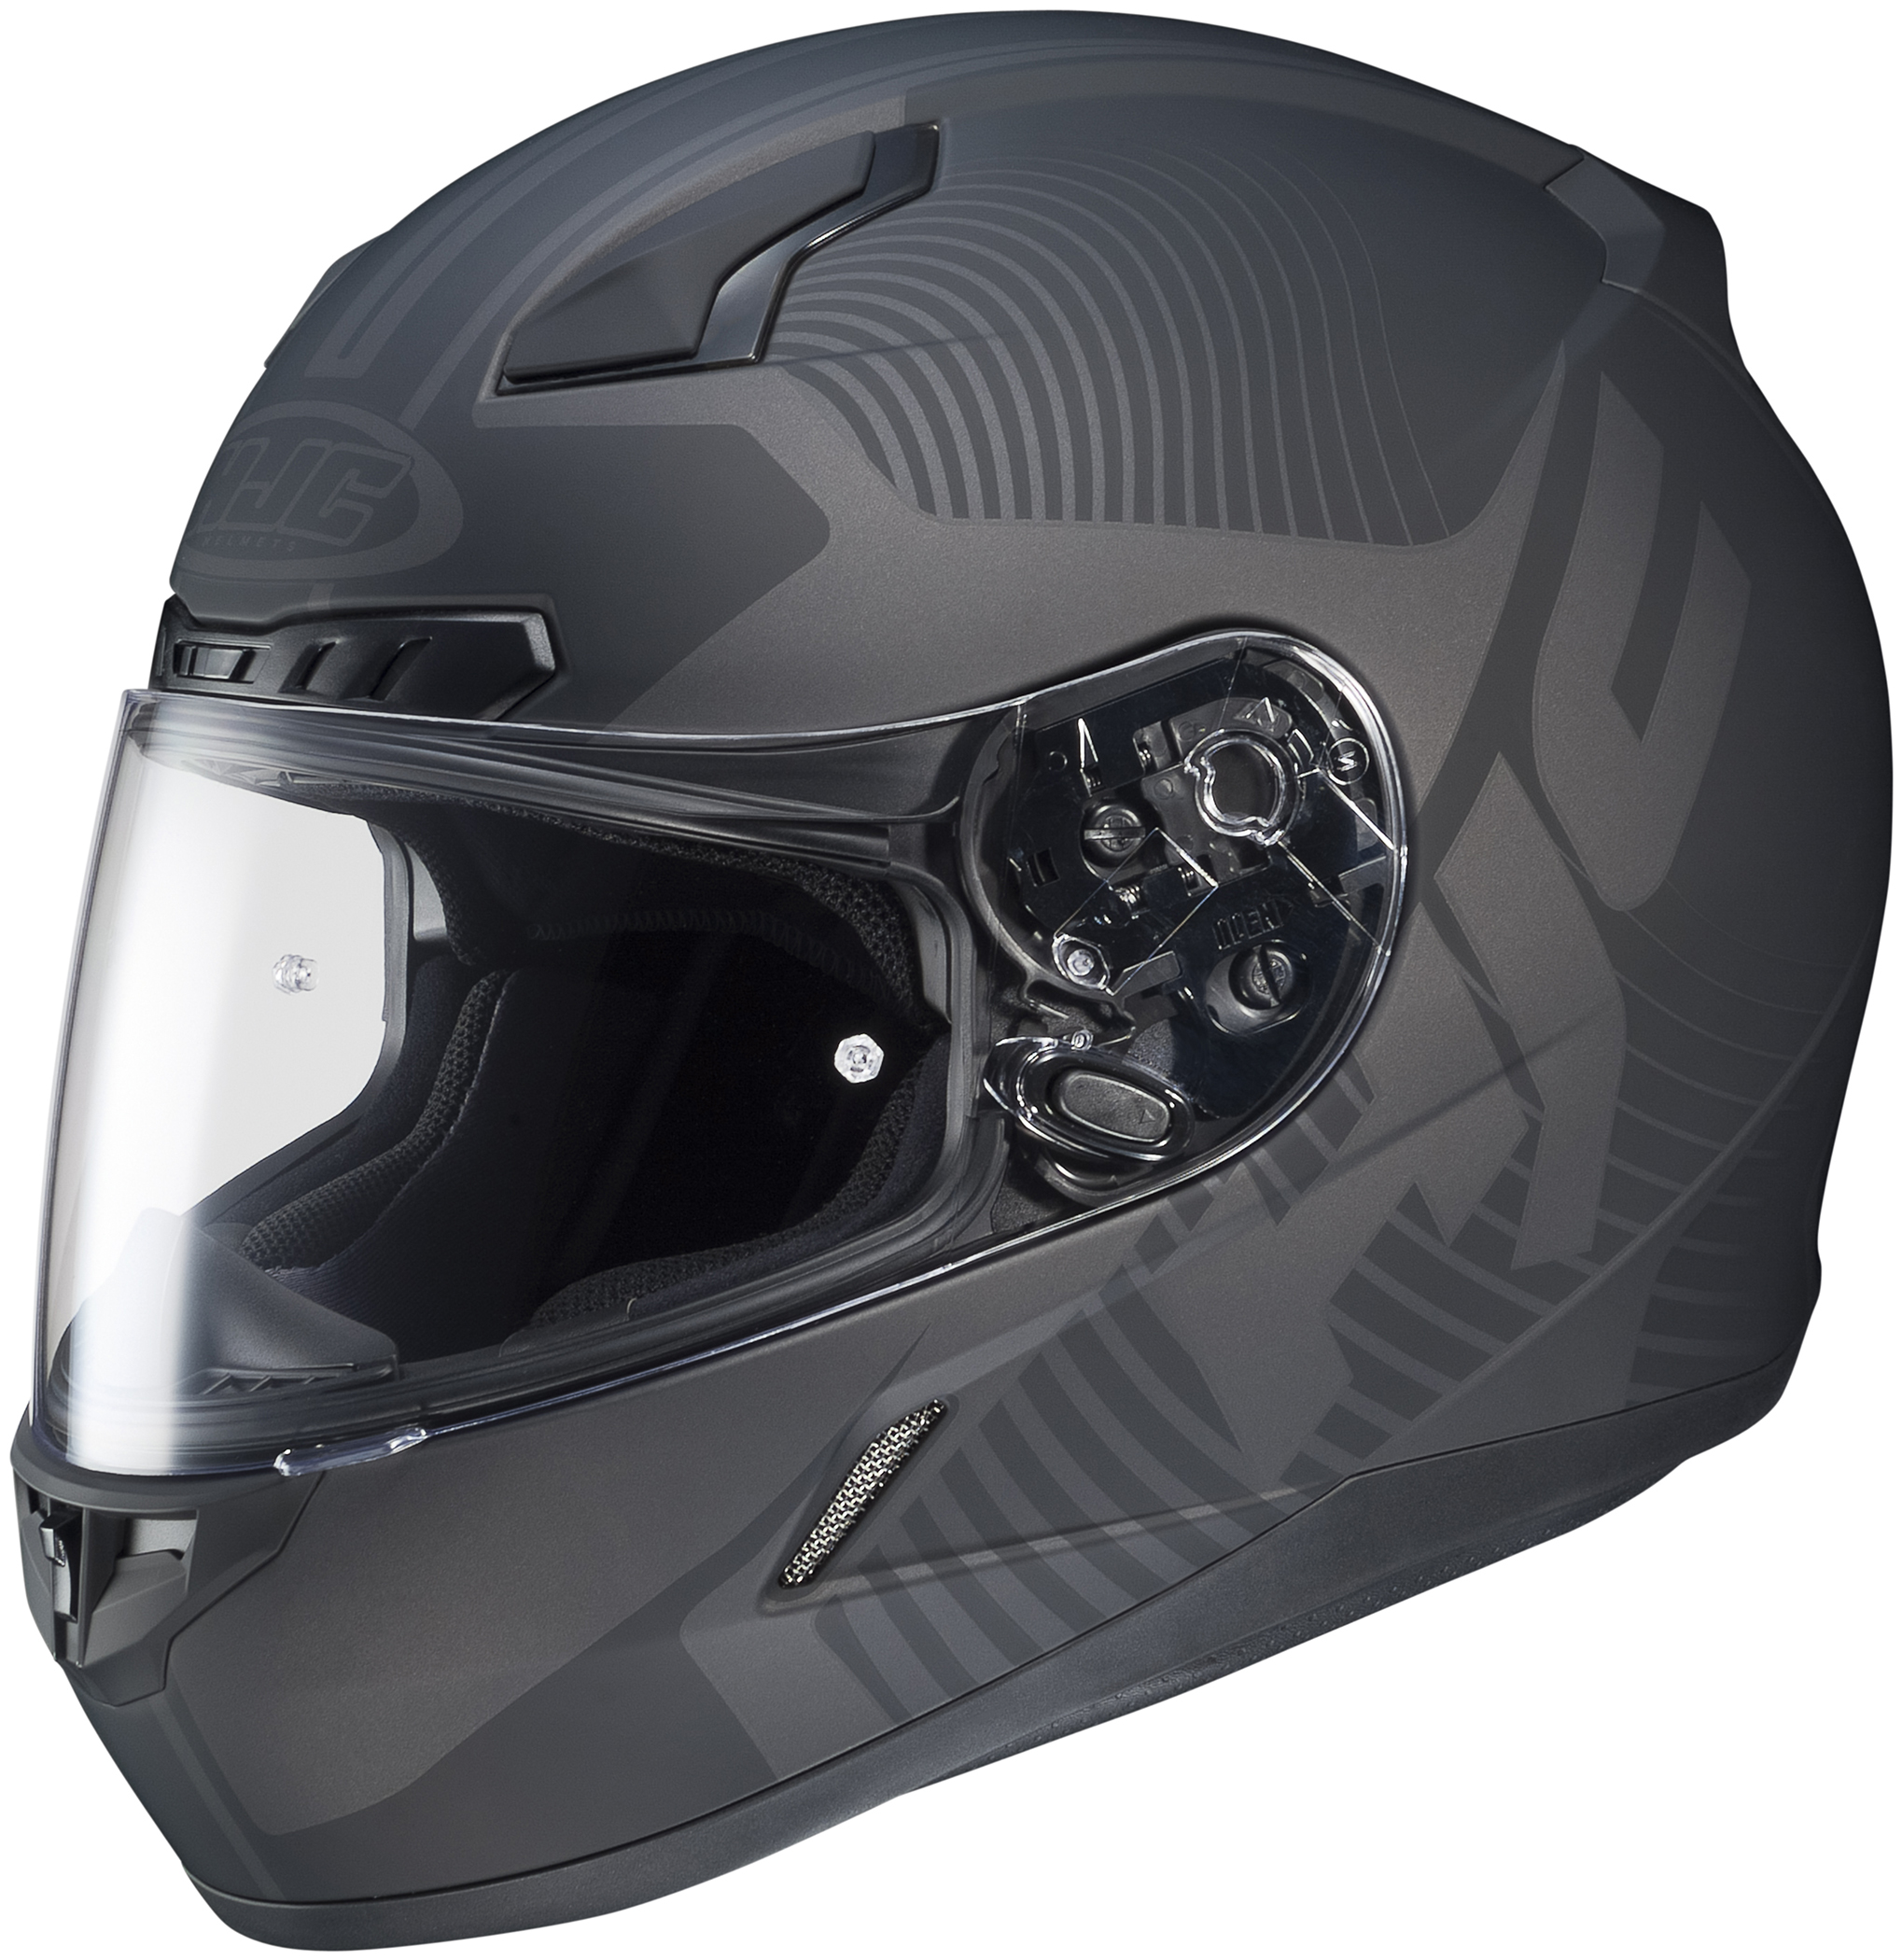 CL-17 Mission Helmets